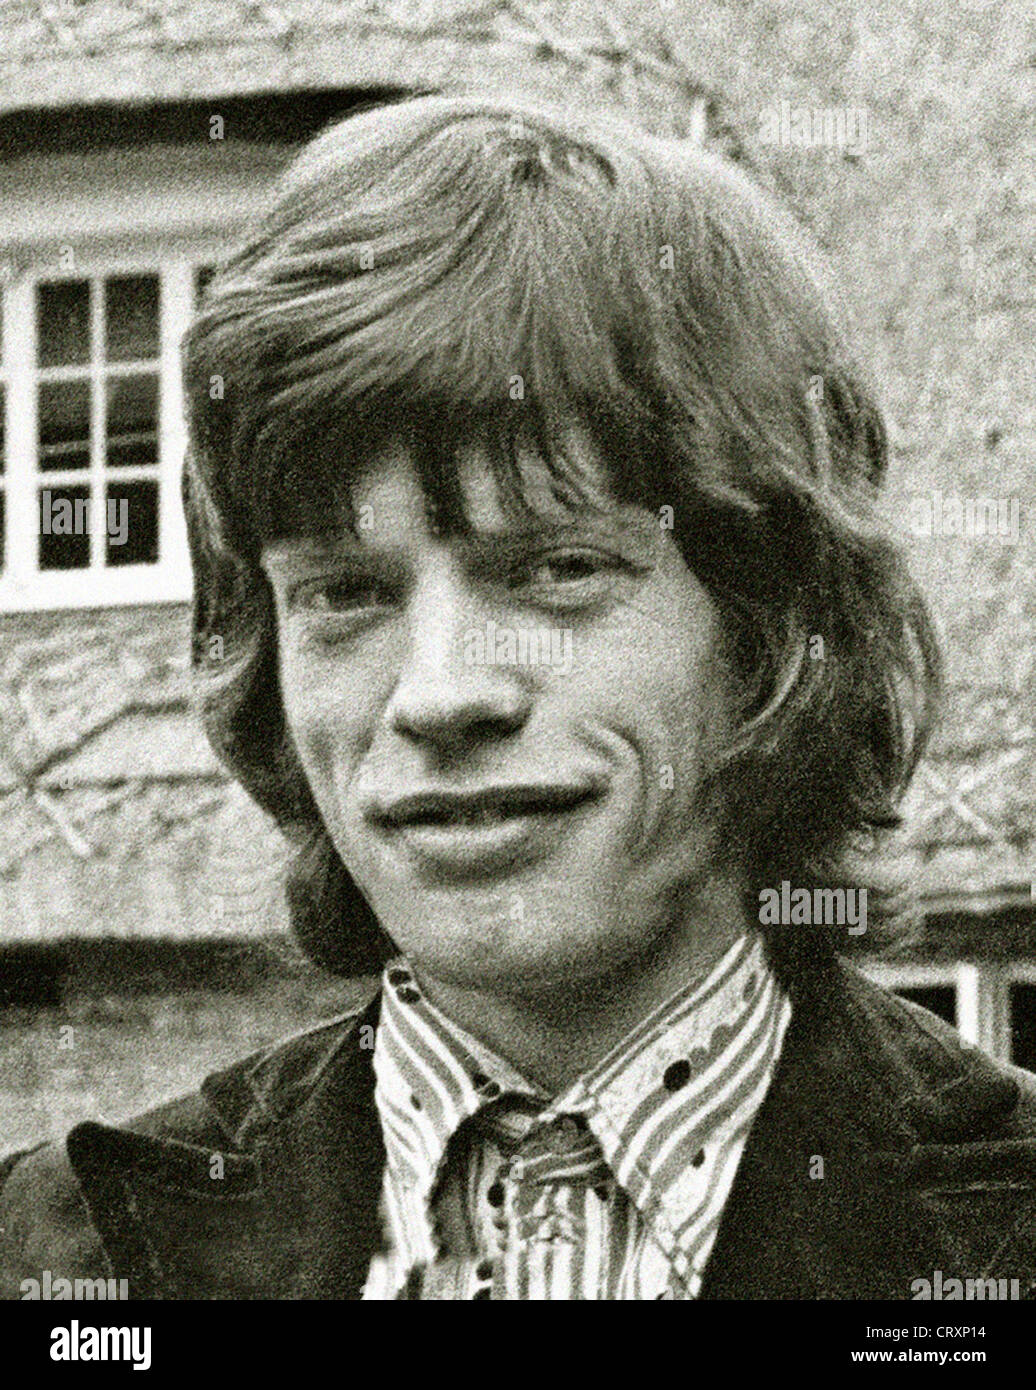 Mick Jagger exclusive image from 1967 by David Cole in the gardens at Redlands. From the archives of Press Portrait Stock Photo